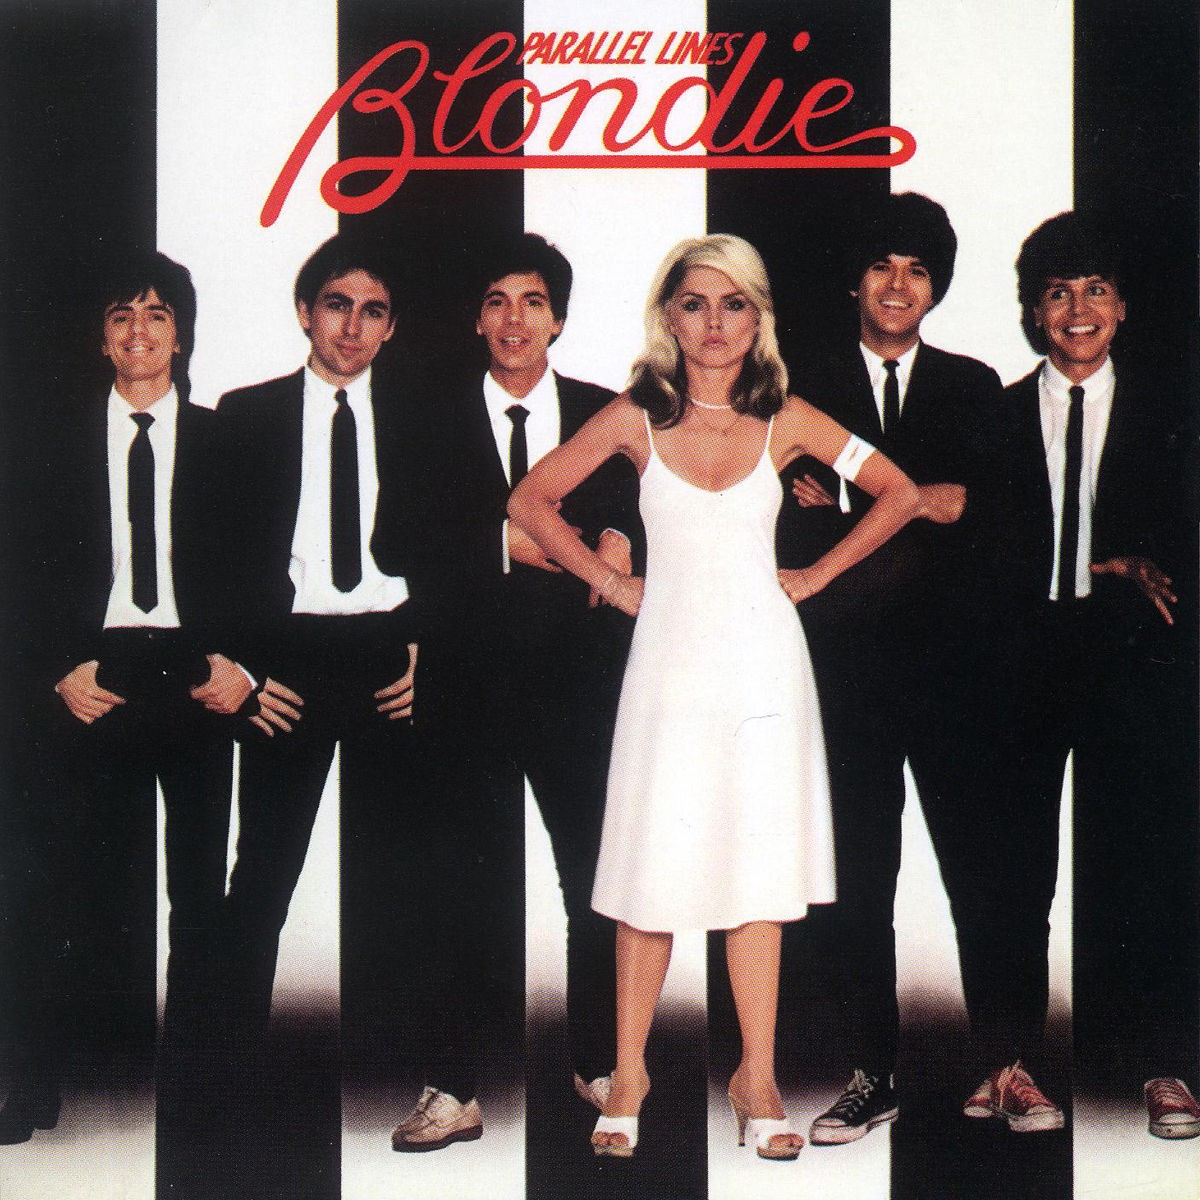 Blondie - Parallel Lines VINYL - 06007 5382117